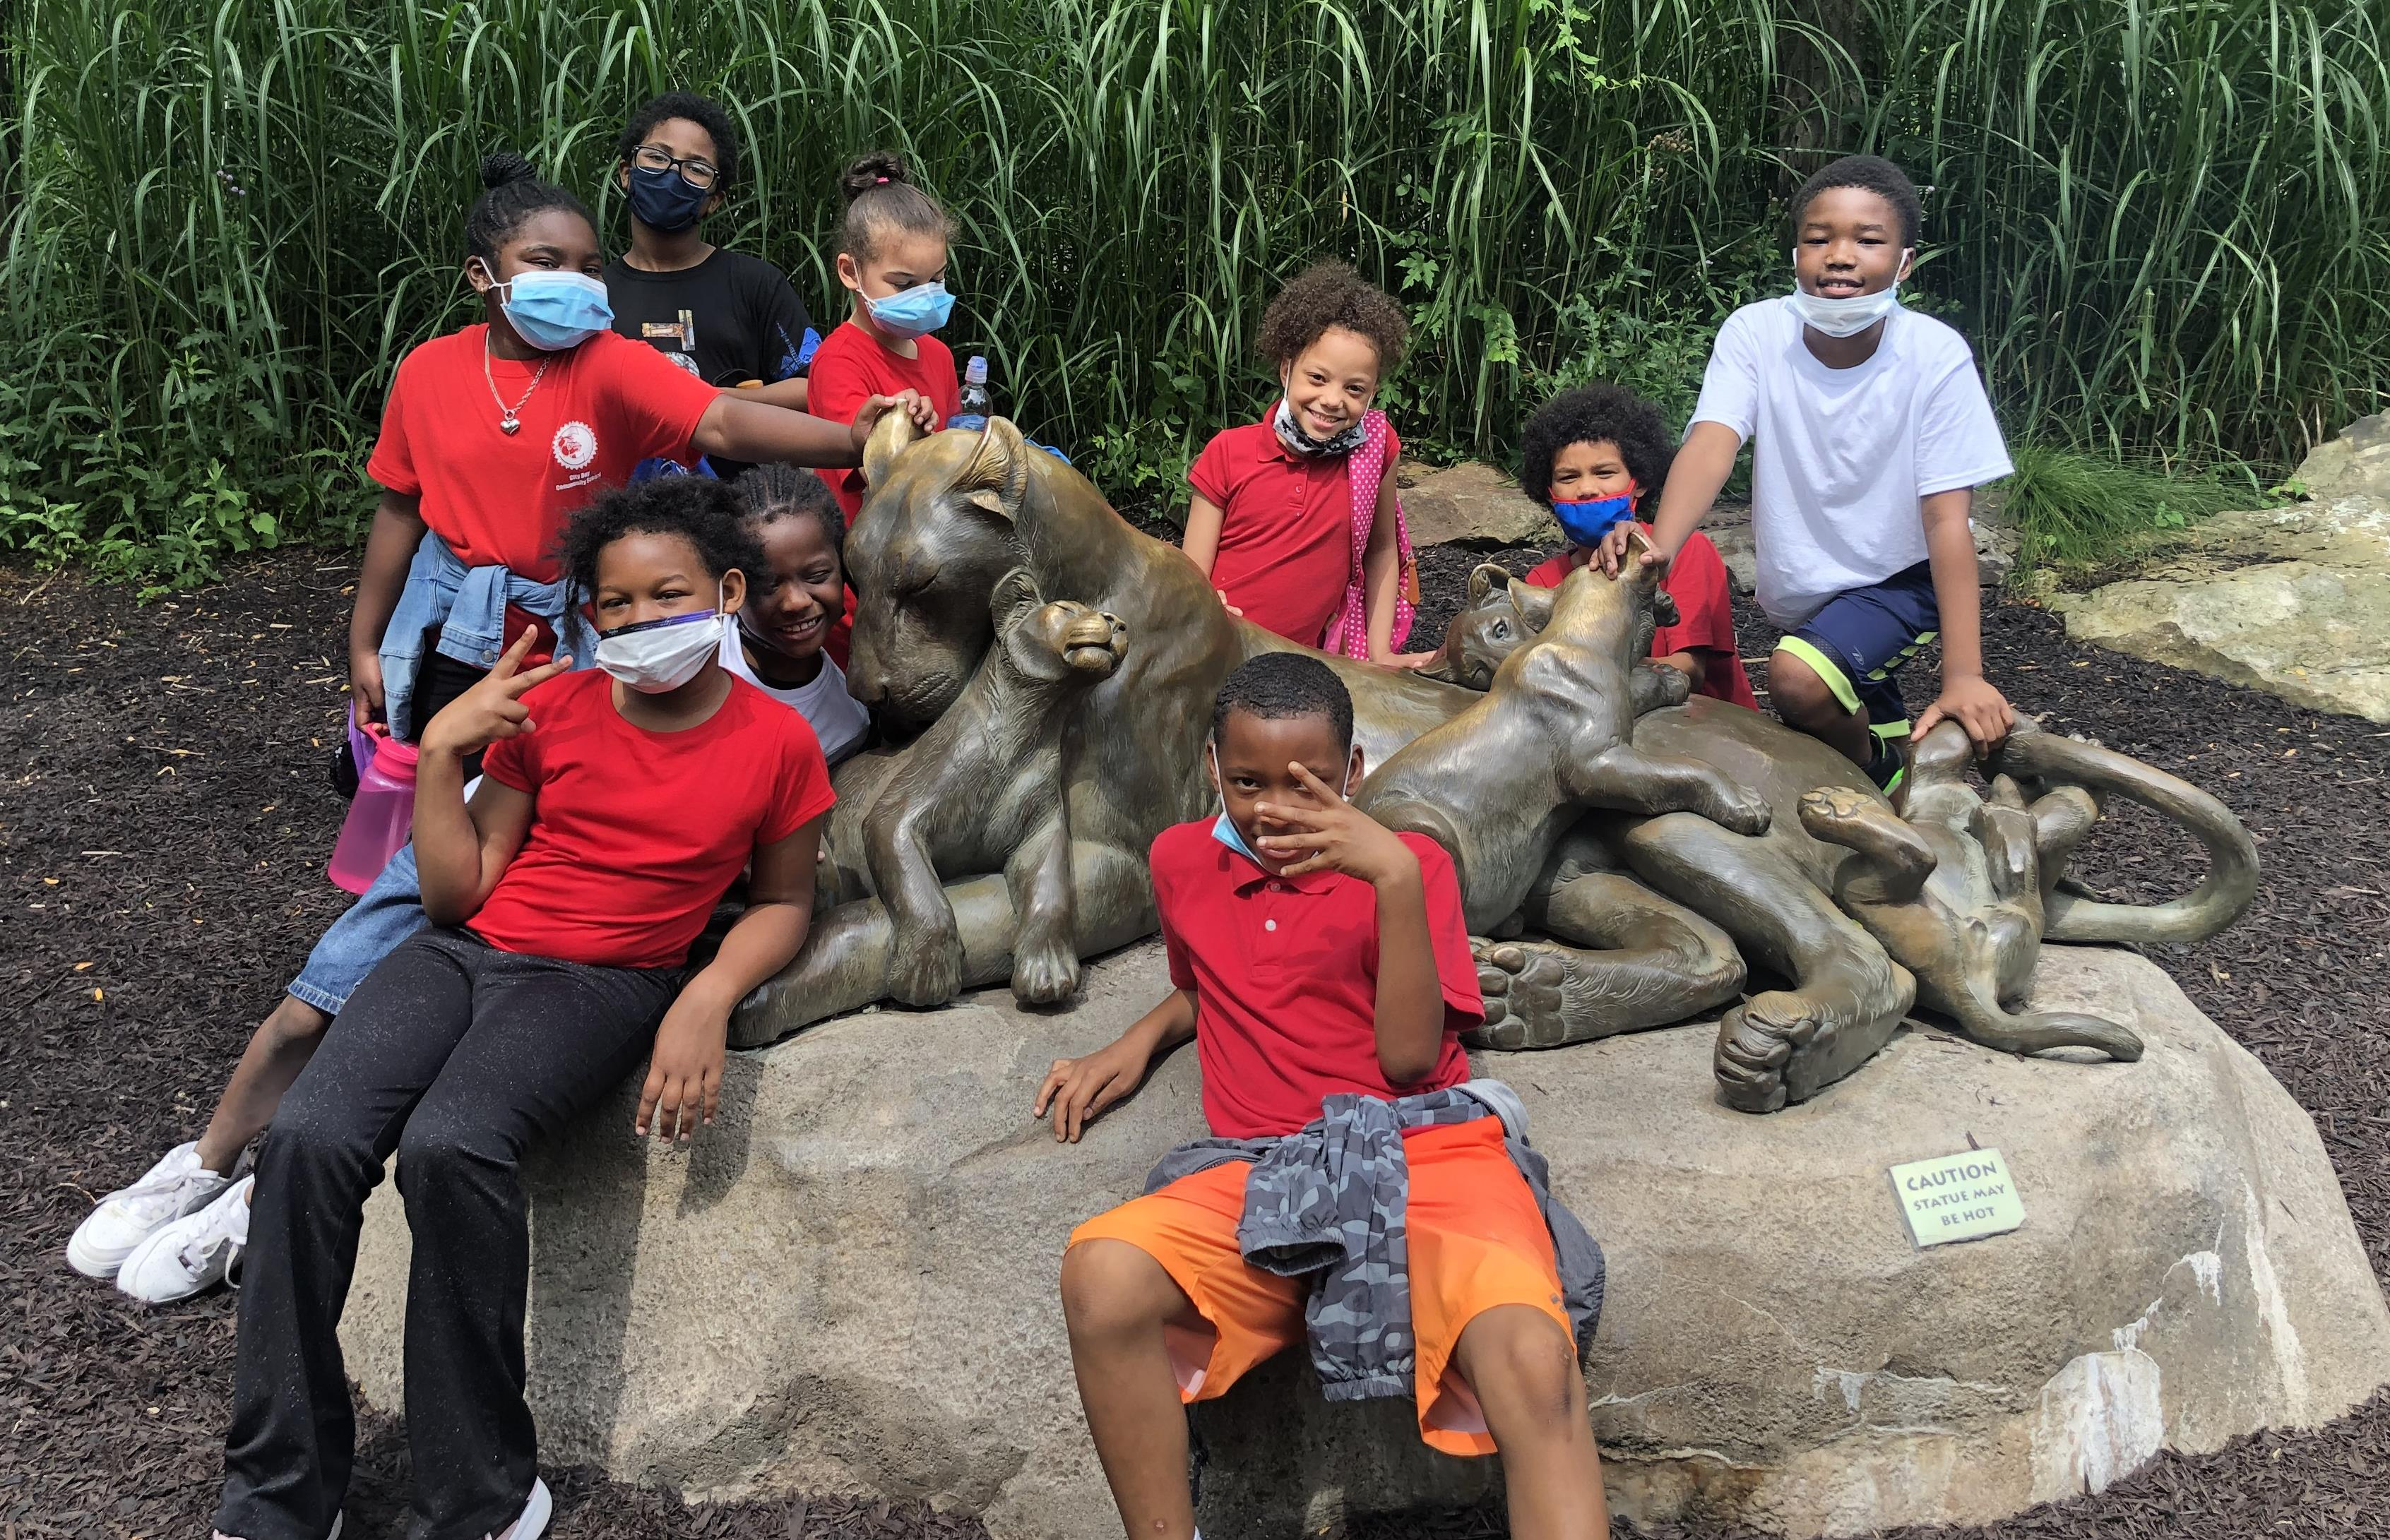 Students posing on lion statue at the zoo